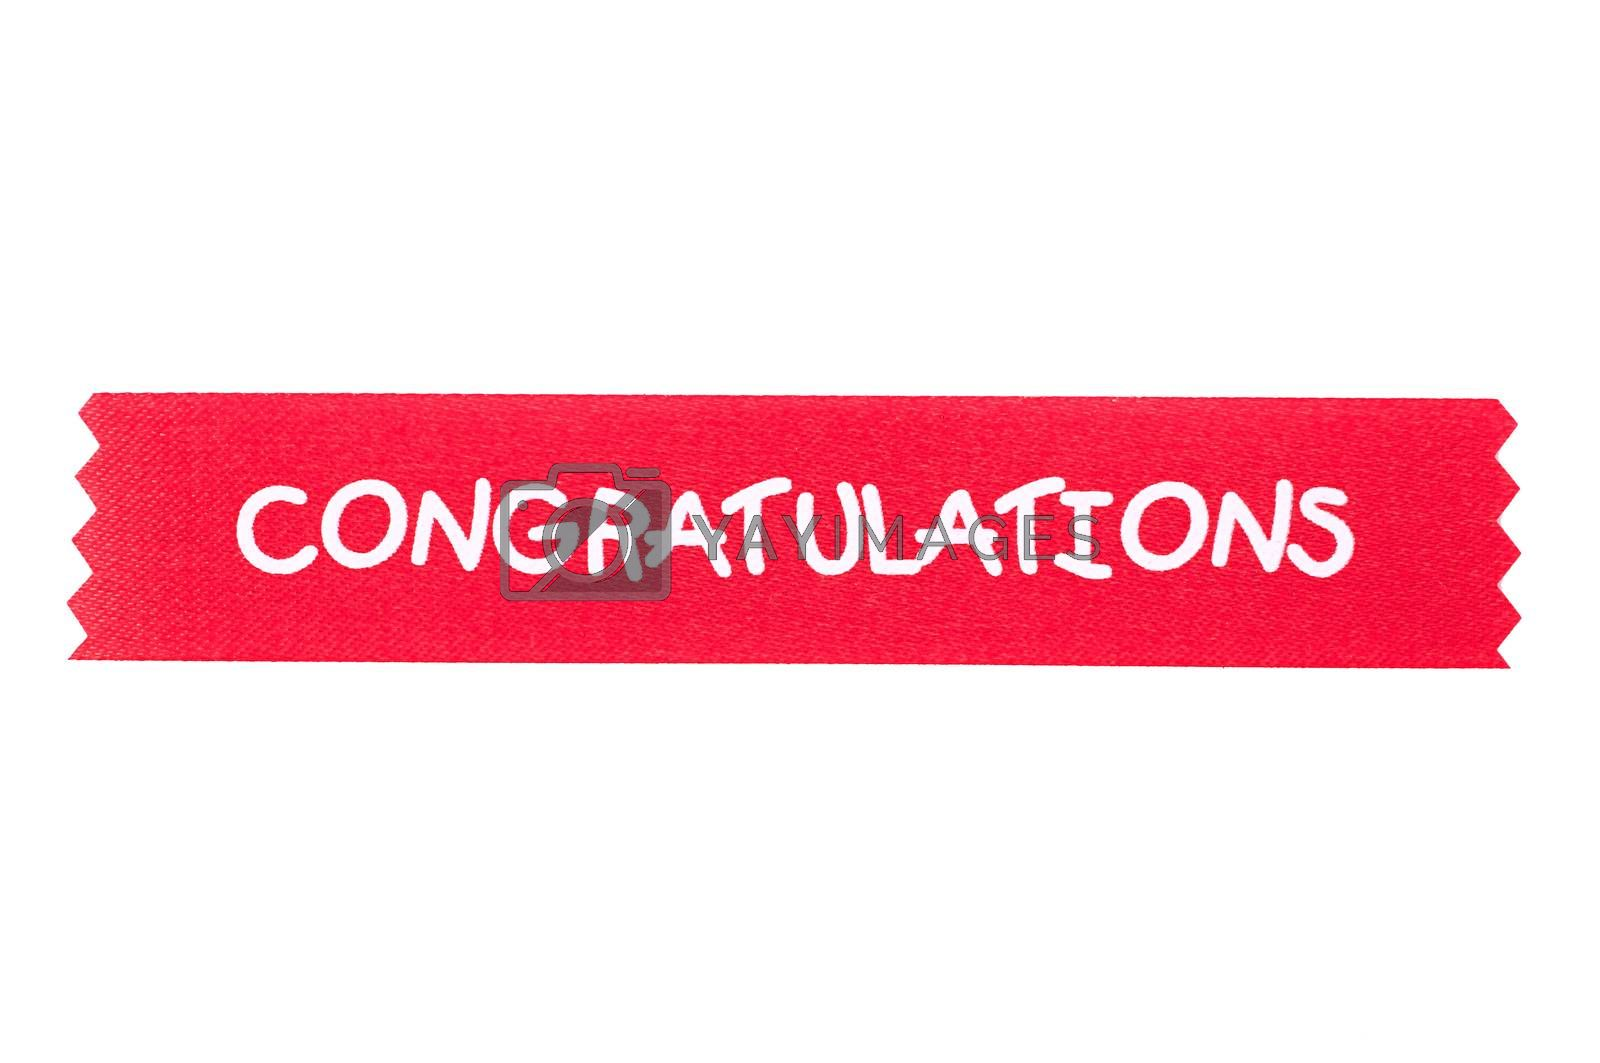 congratulation ribbon for background by gukgui